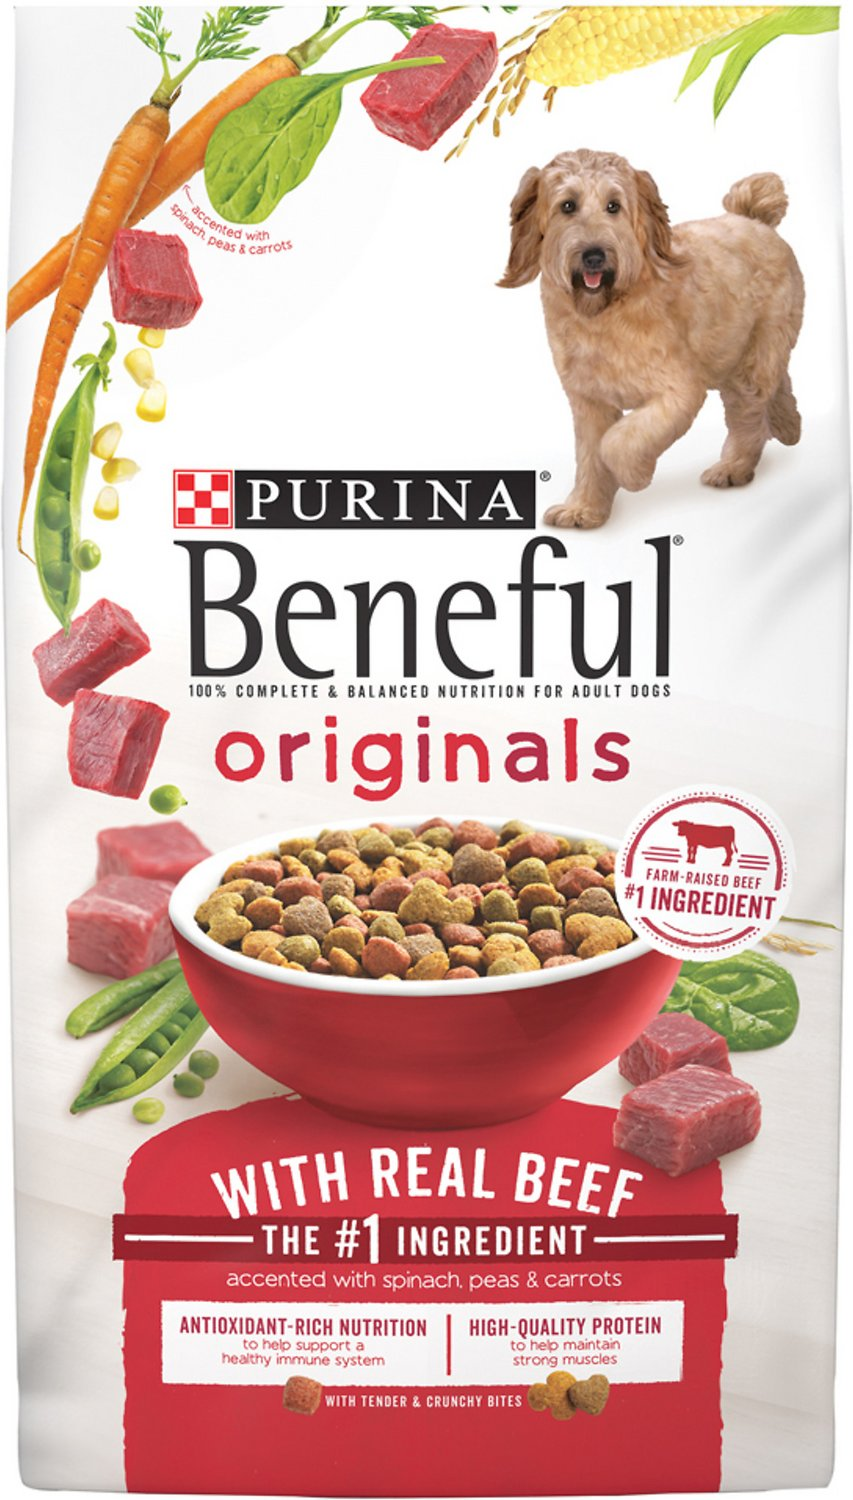 How Purina Dog Food Is Made